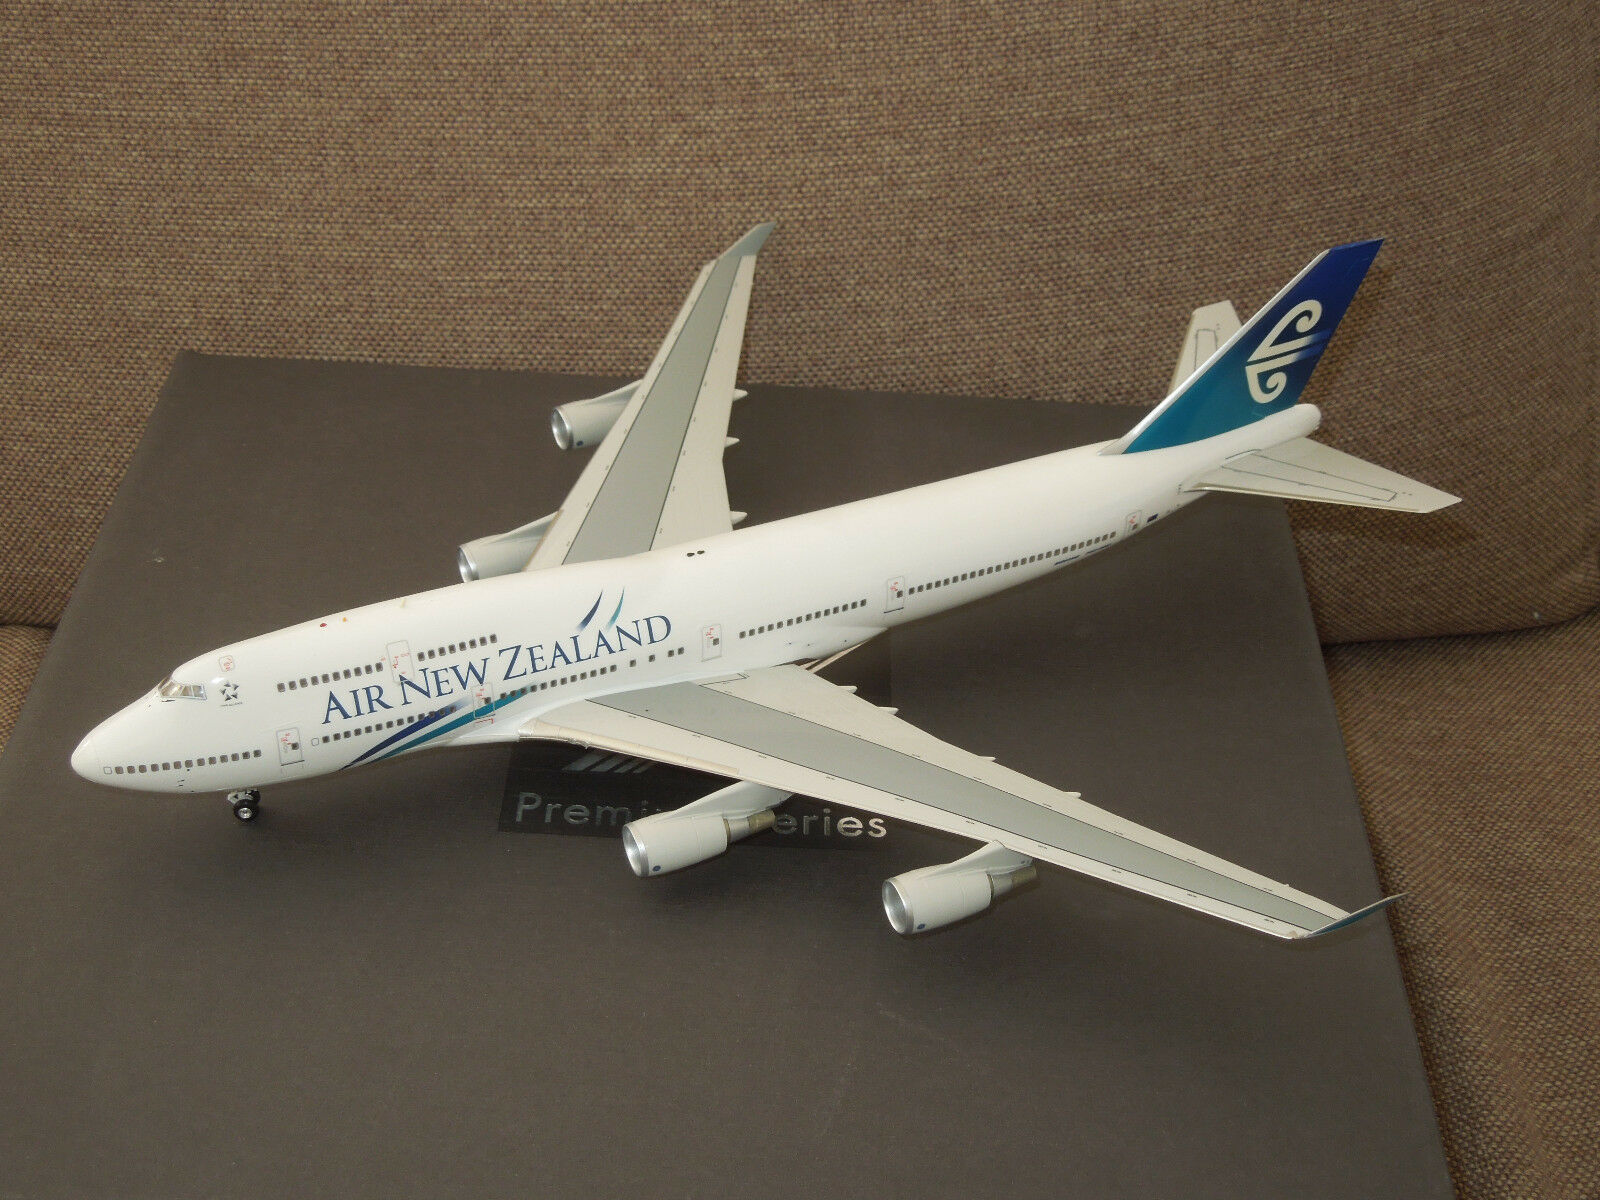 Herpa Premium series 1 200 Boeing 747-400 Air New Zealand